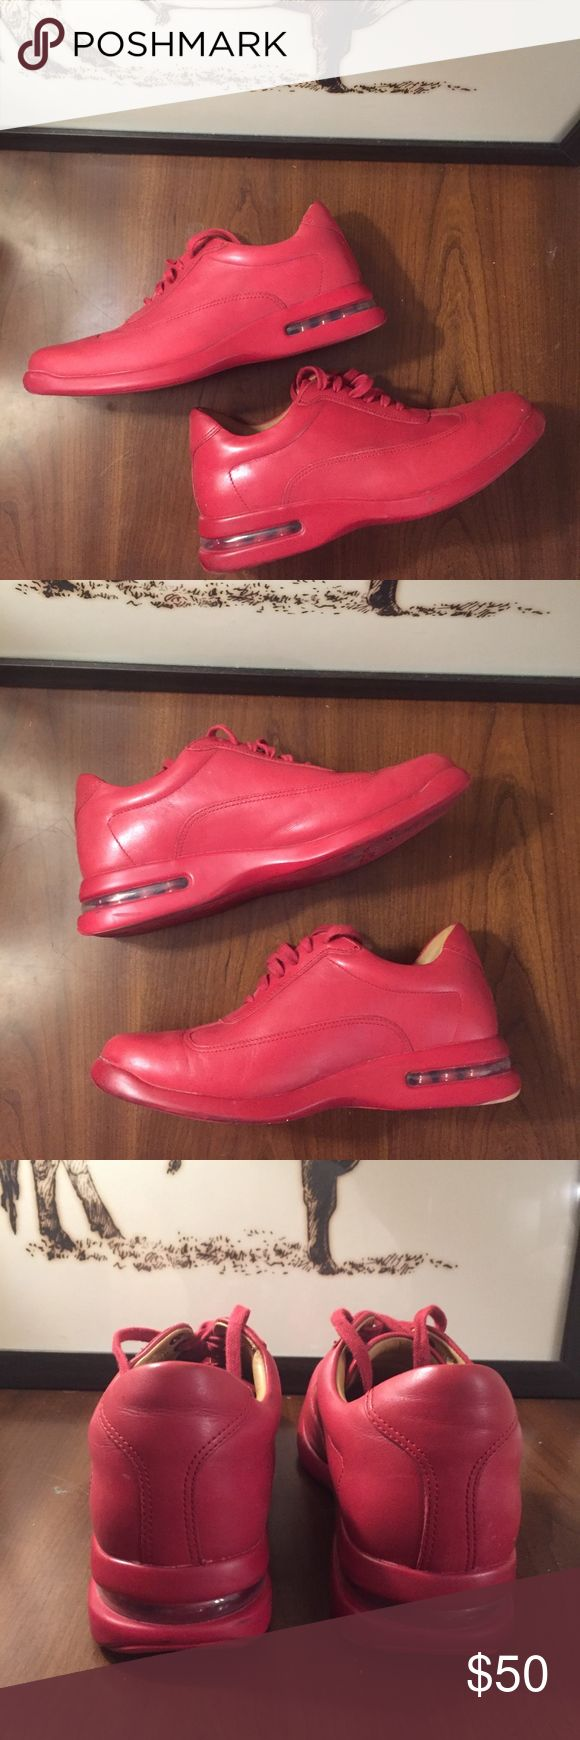 Cole Haan Nike Air Conner Fashion Sneaker (8.5) - Leather - Leather upper, leather lining - Rubber Sole - Lace up - Nike Air Technology - Sport-inspired design Cole Haan Shoes Sneakers